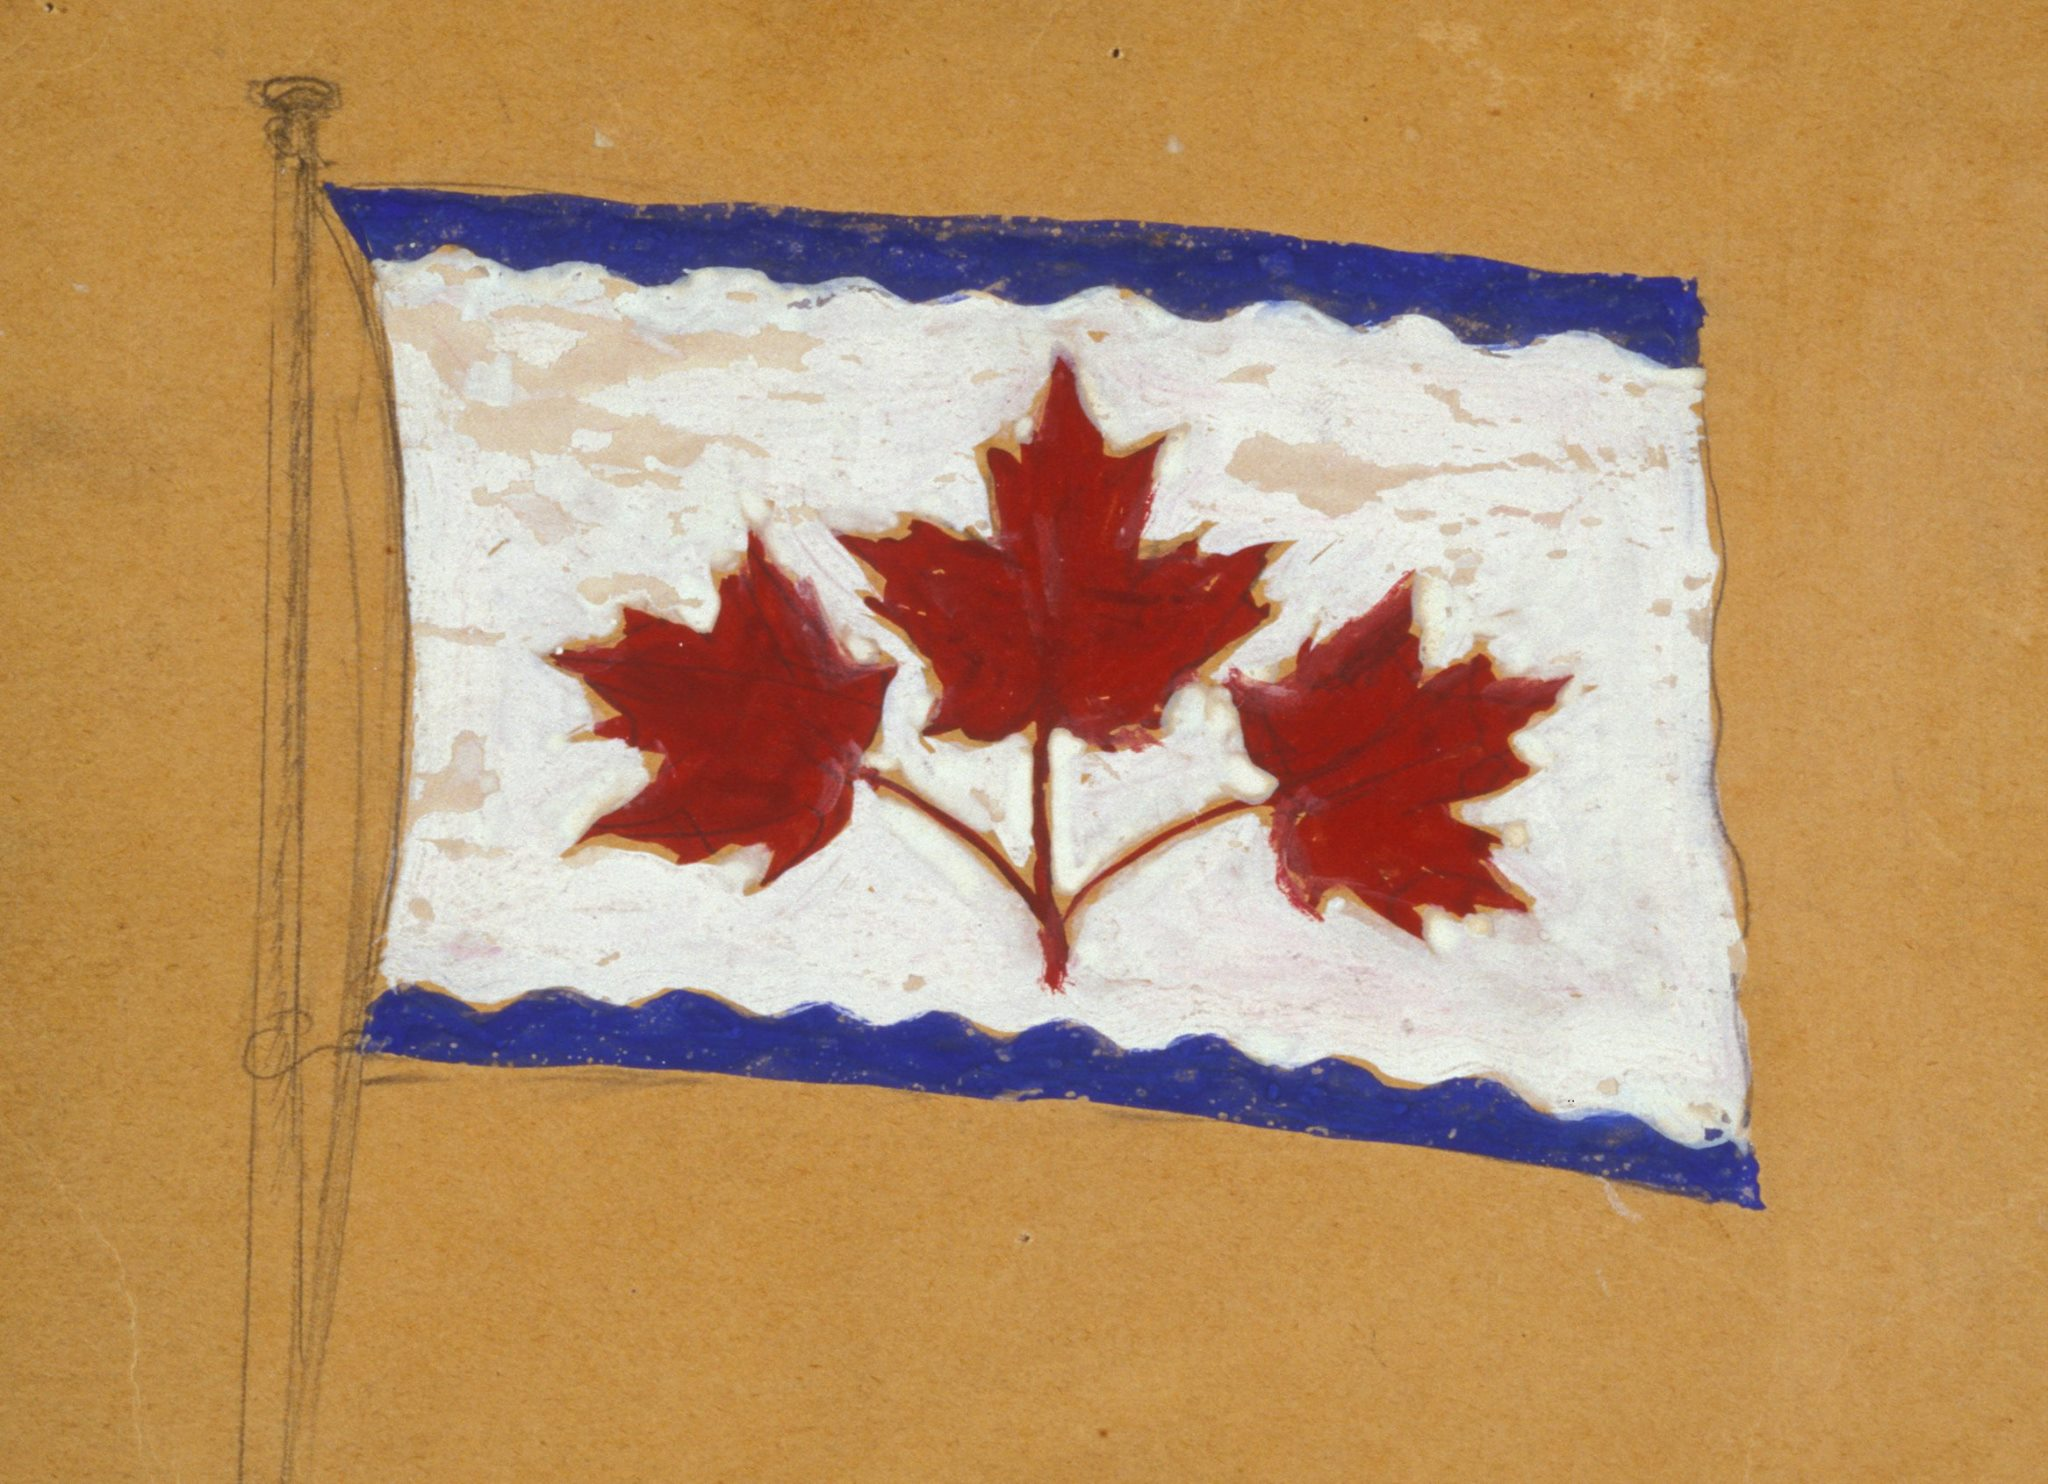 oxtongue river and the canadian flag debate painting the